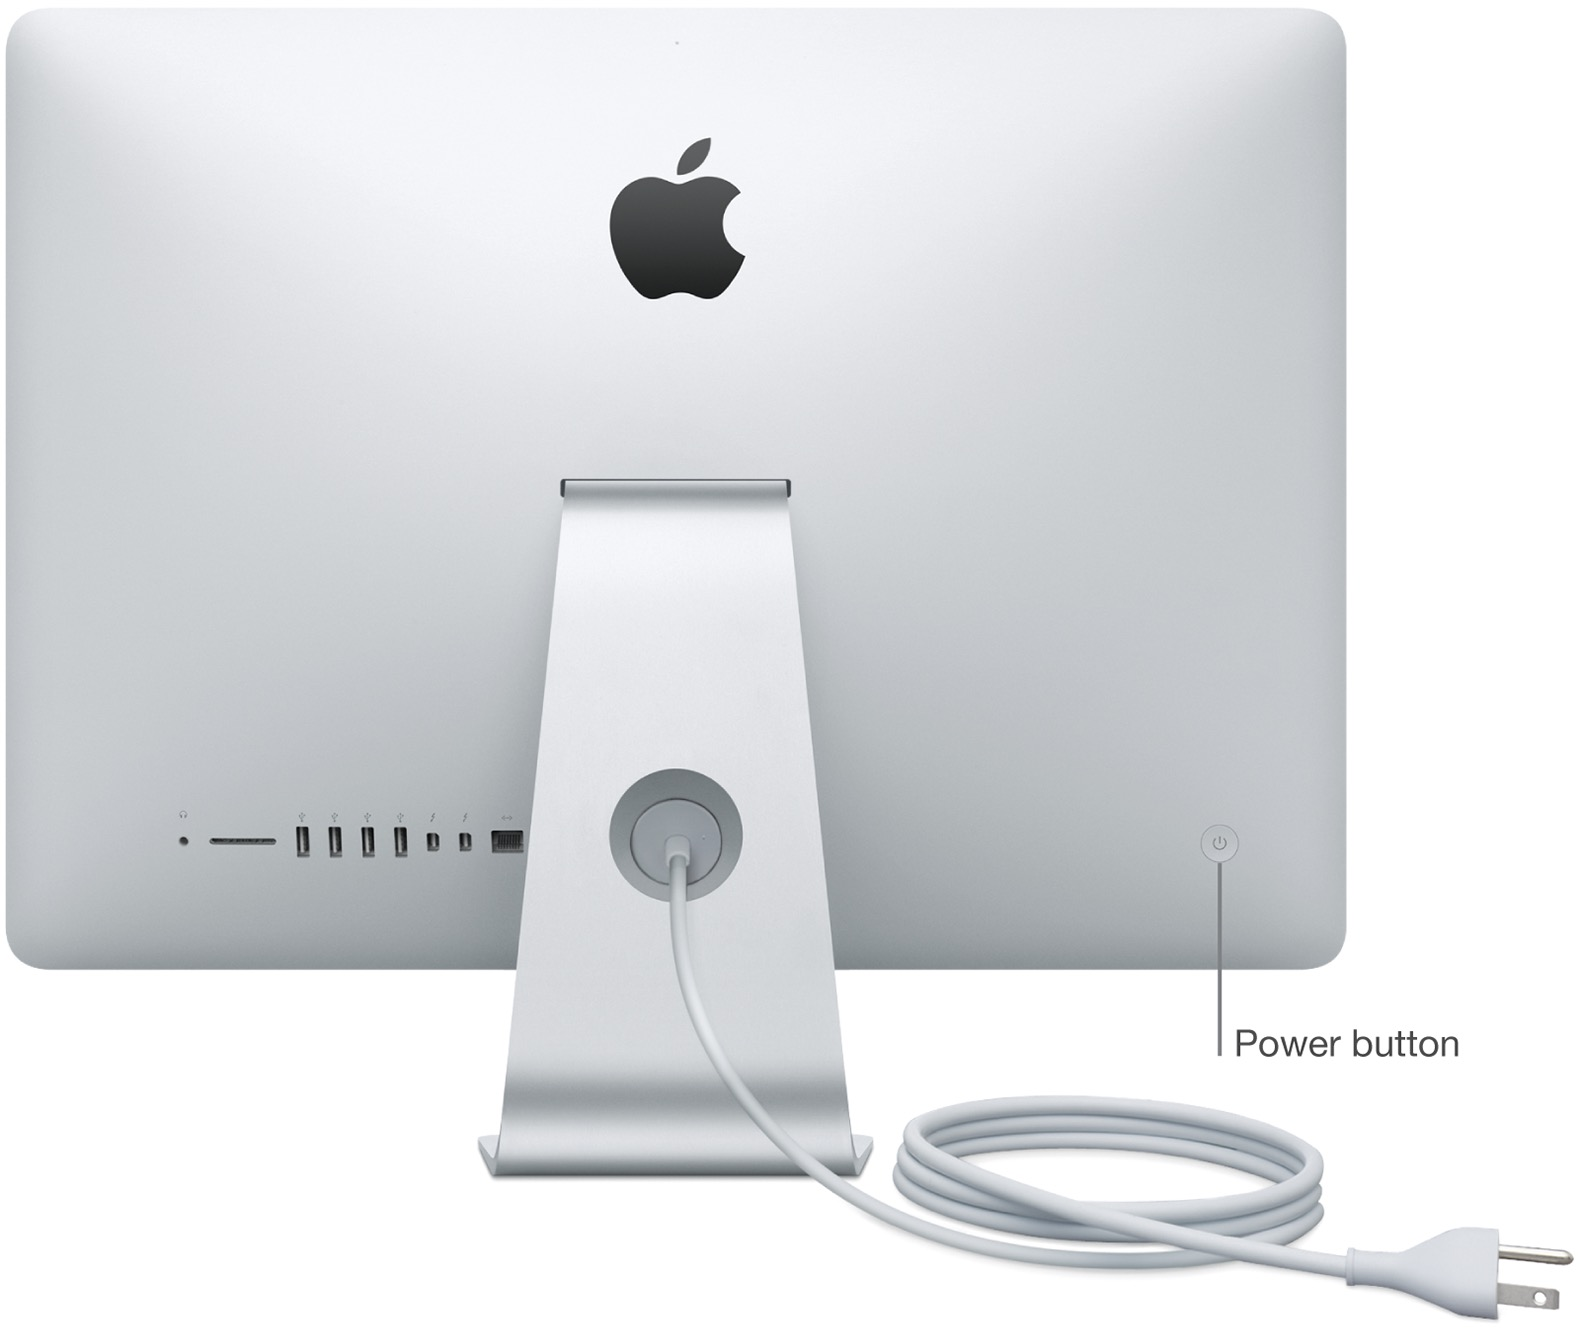 How to turn your Mac on or off - Apple Support